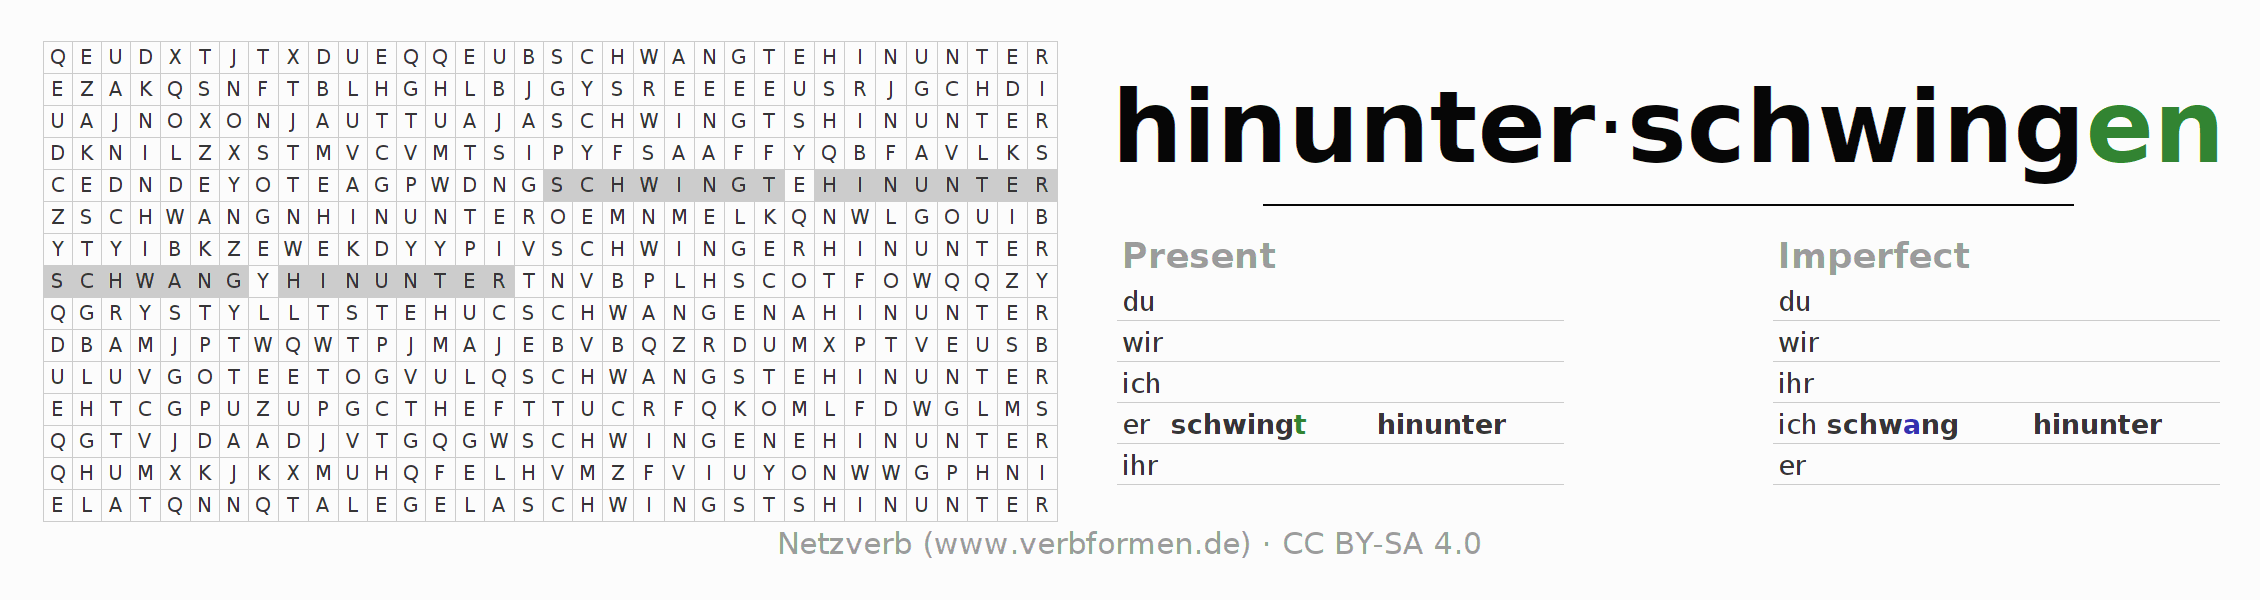 Word search puzzle for the conjugation of the verb hinunterschwingen (ist)